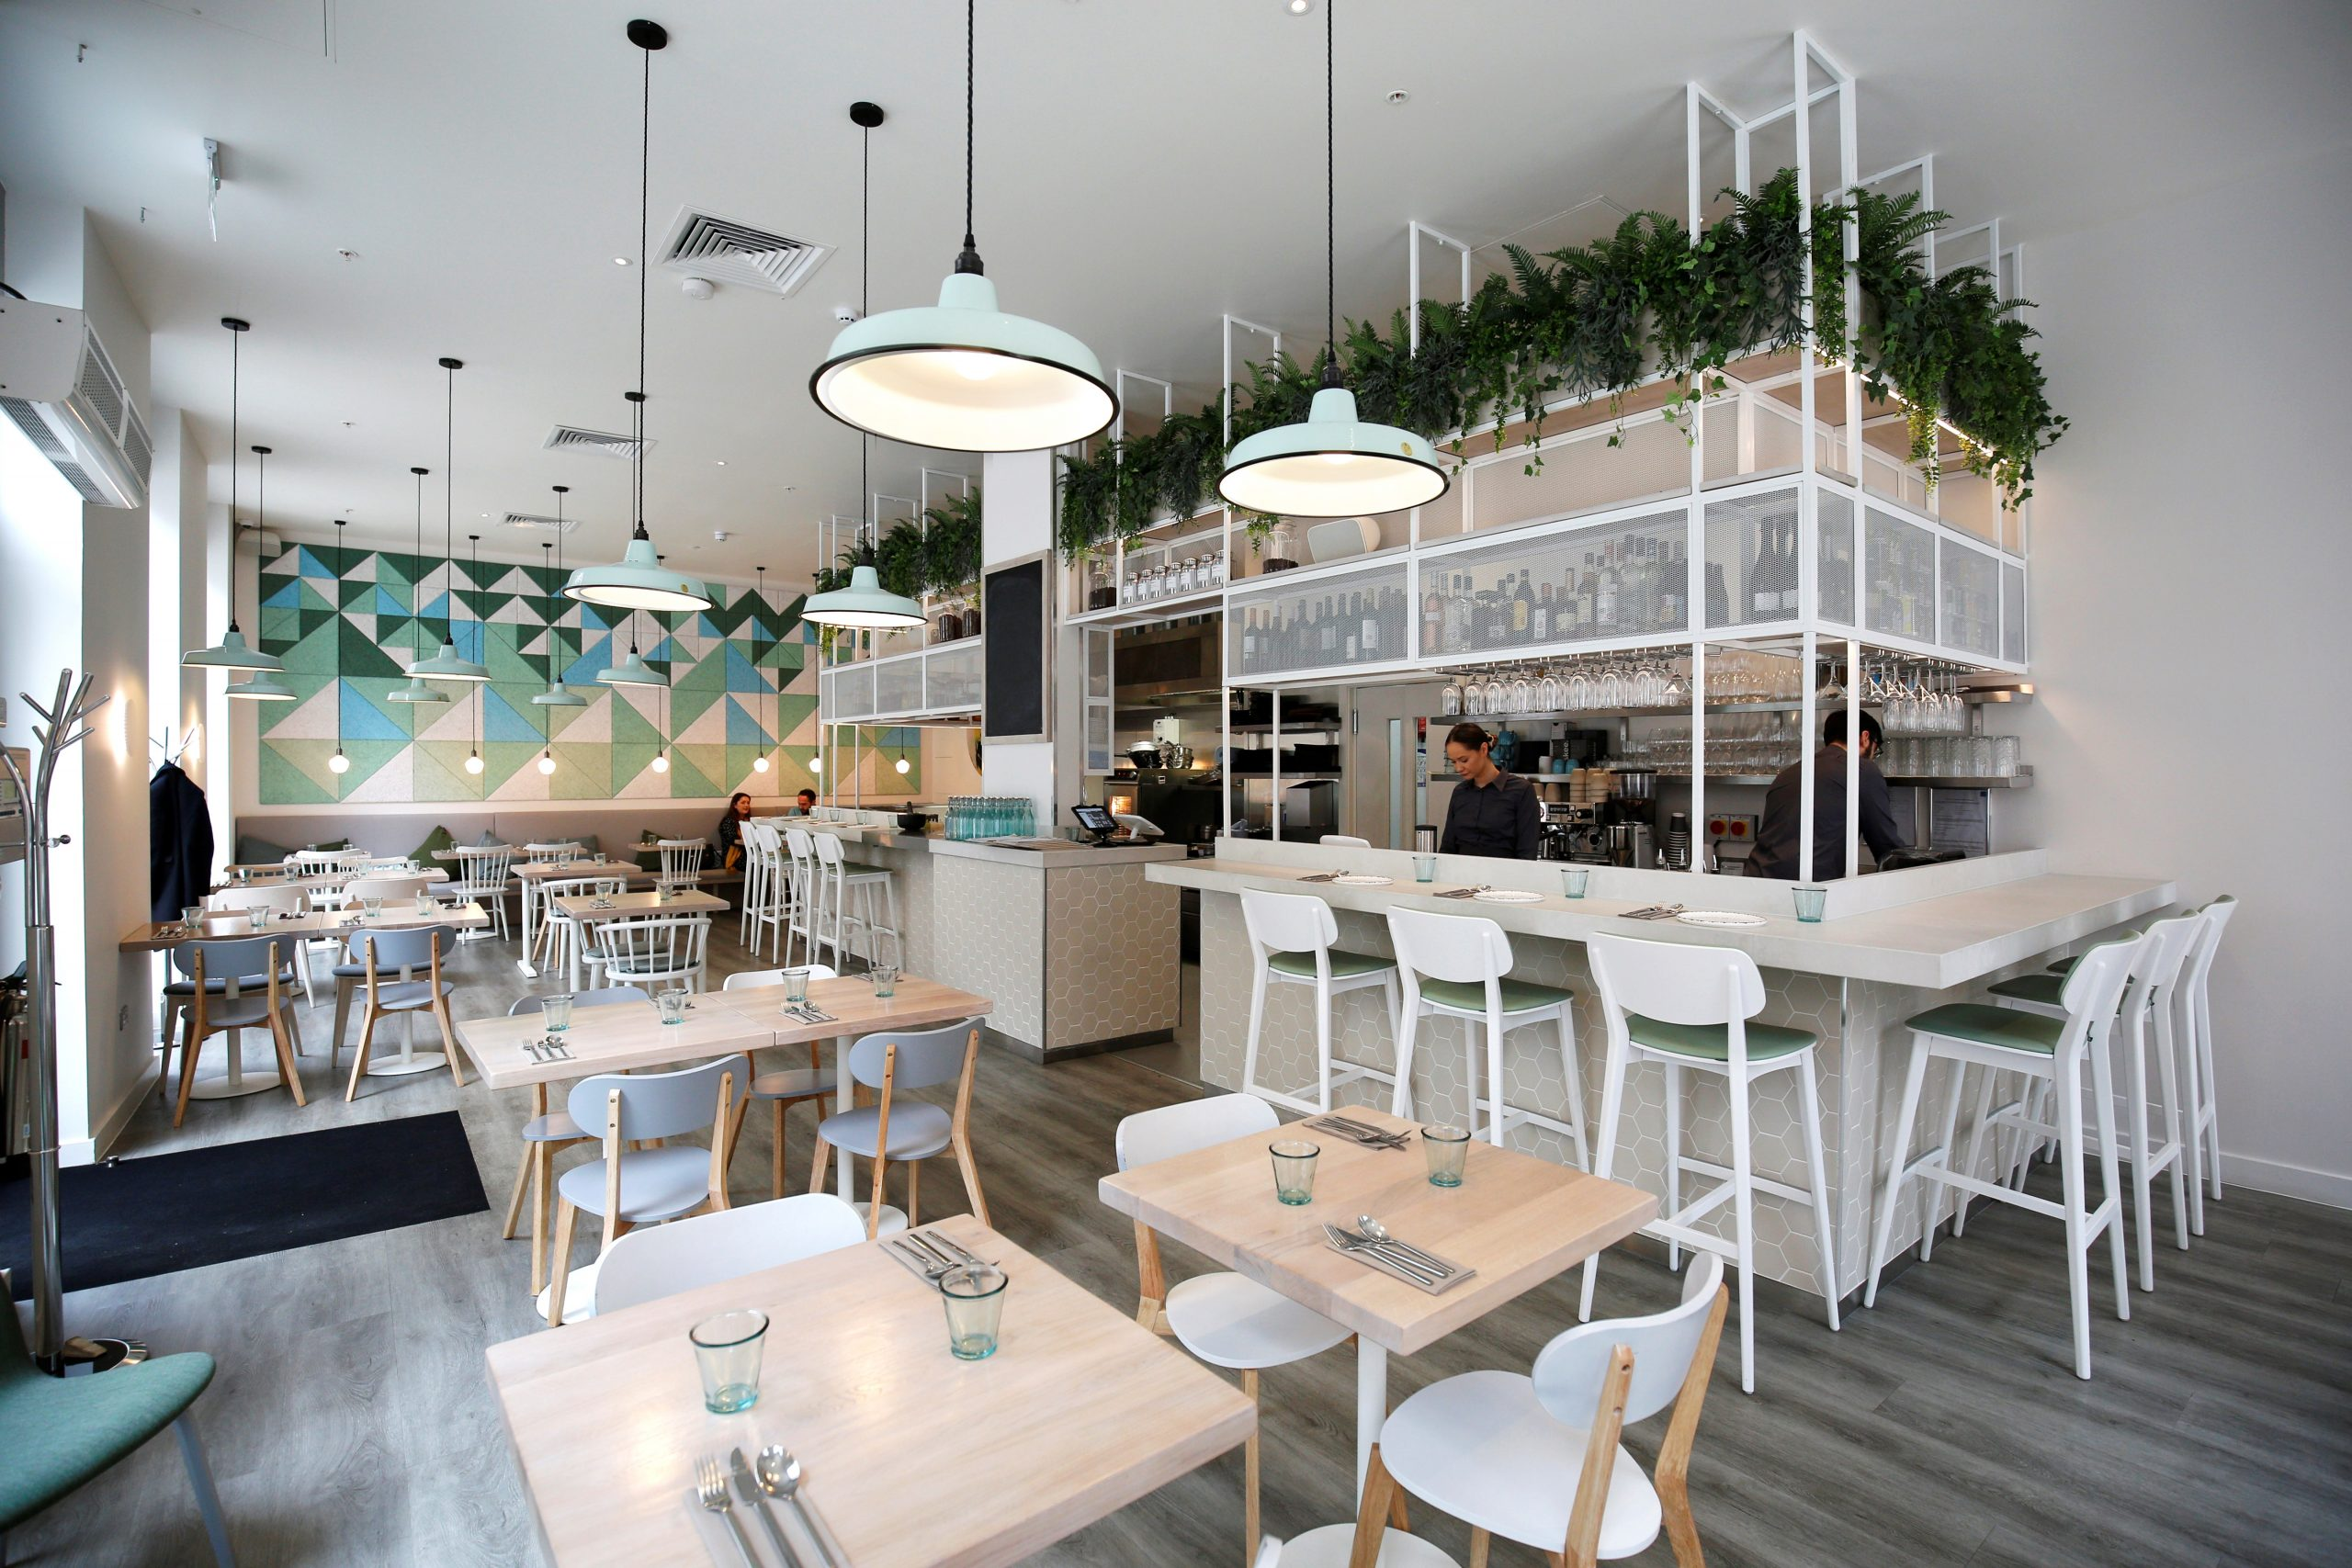 Stem & Glory interior: stem & glory first restaurant to commit to carbon neutral by end of 2021